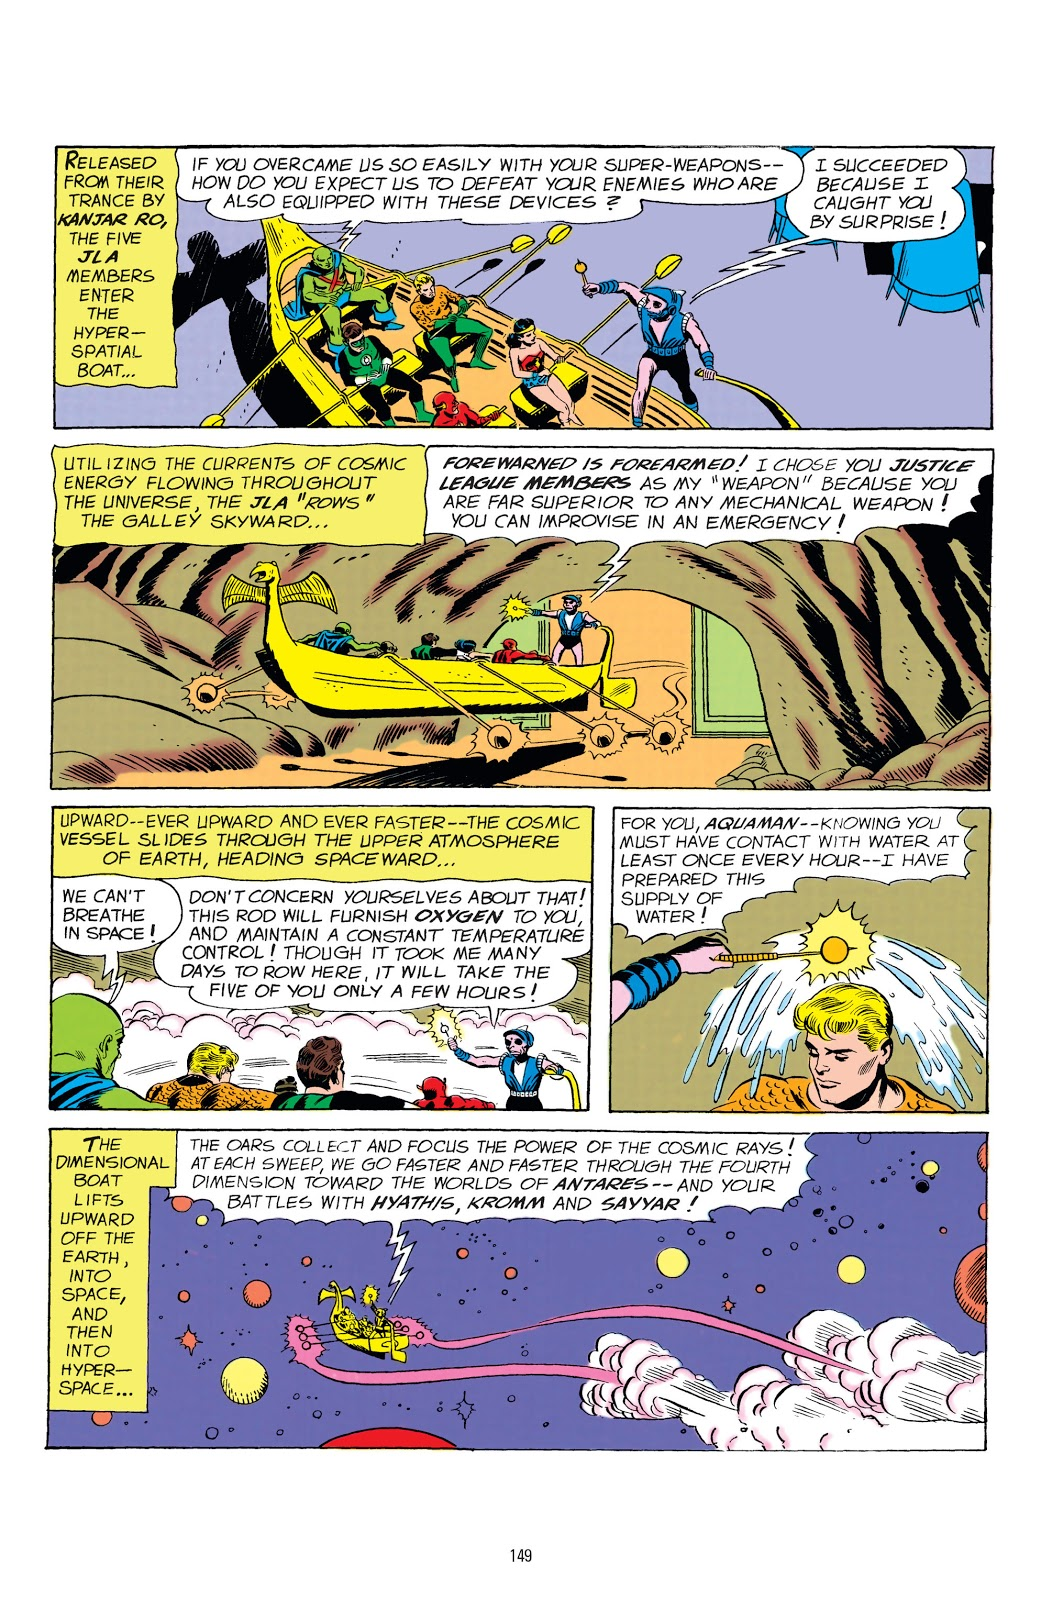 Justice League of America - The Silver Age Volume One review